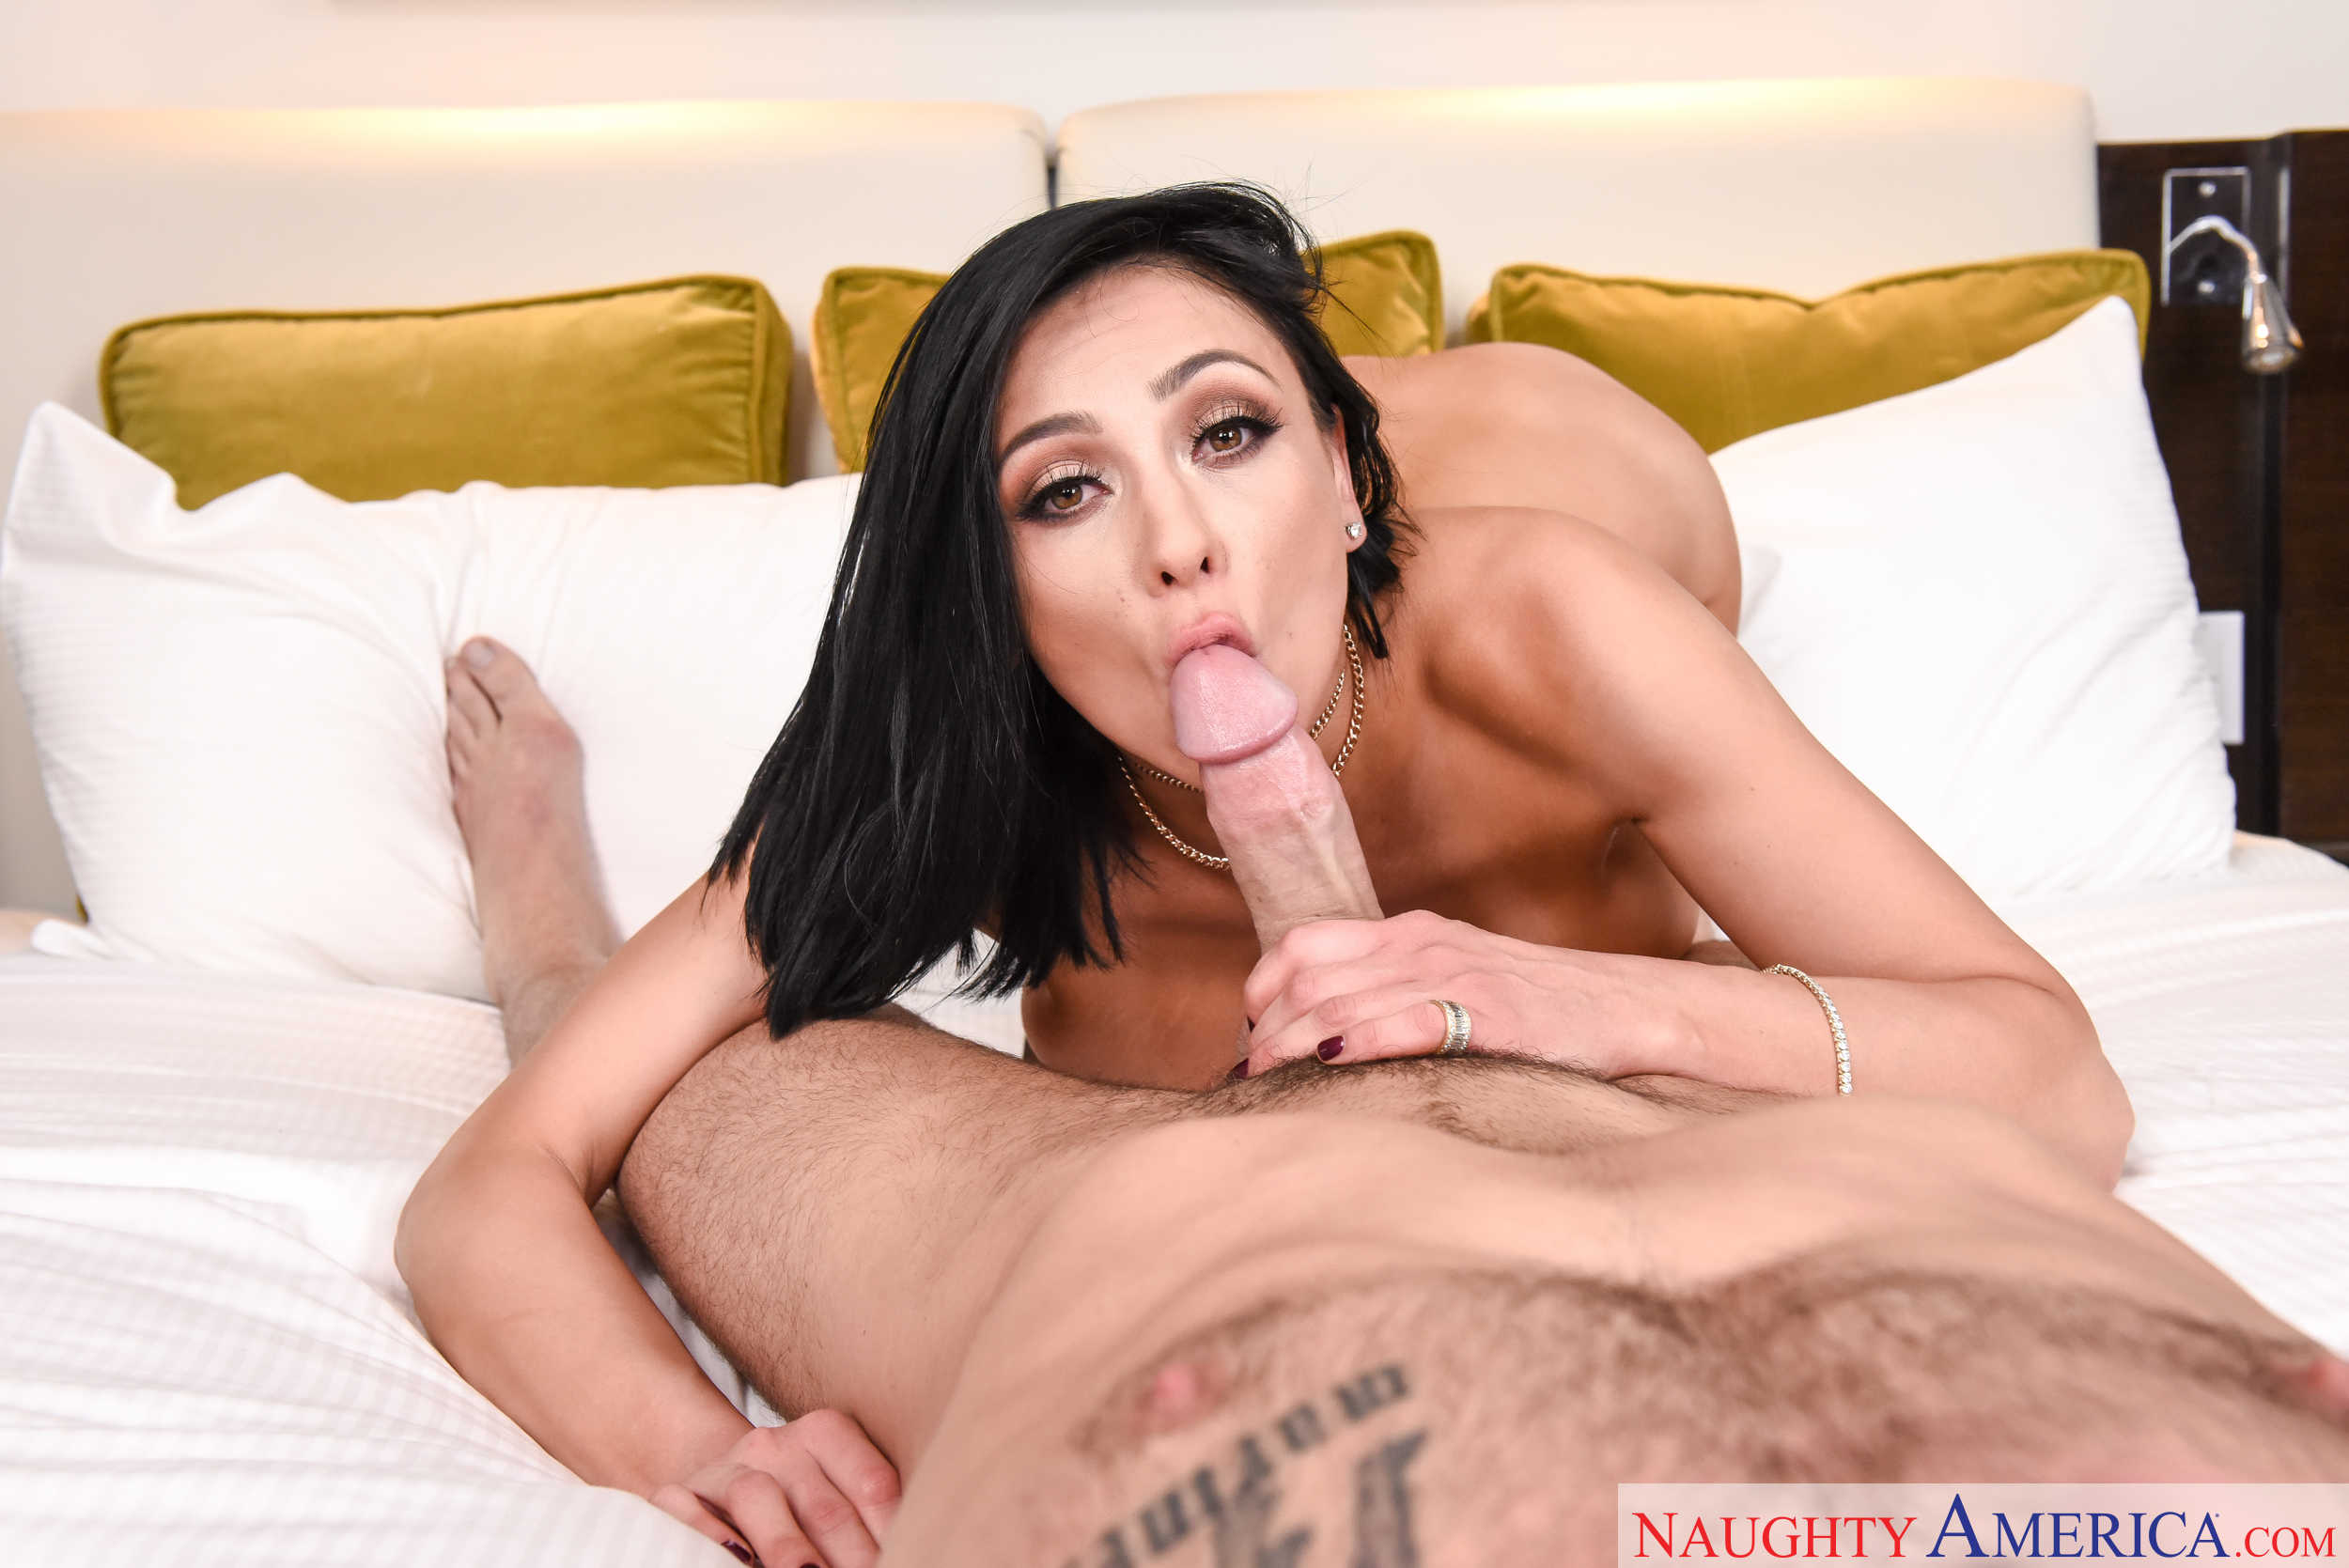 audrey-bitoni-pornstar-videos-forced-development-of-young-girl-breasts